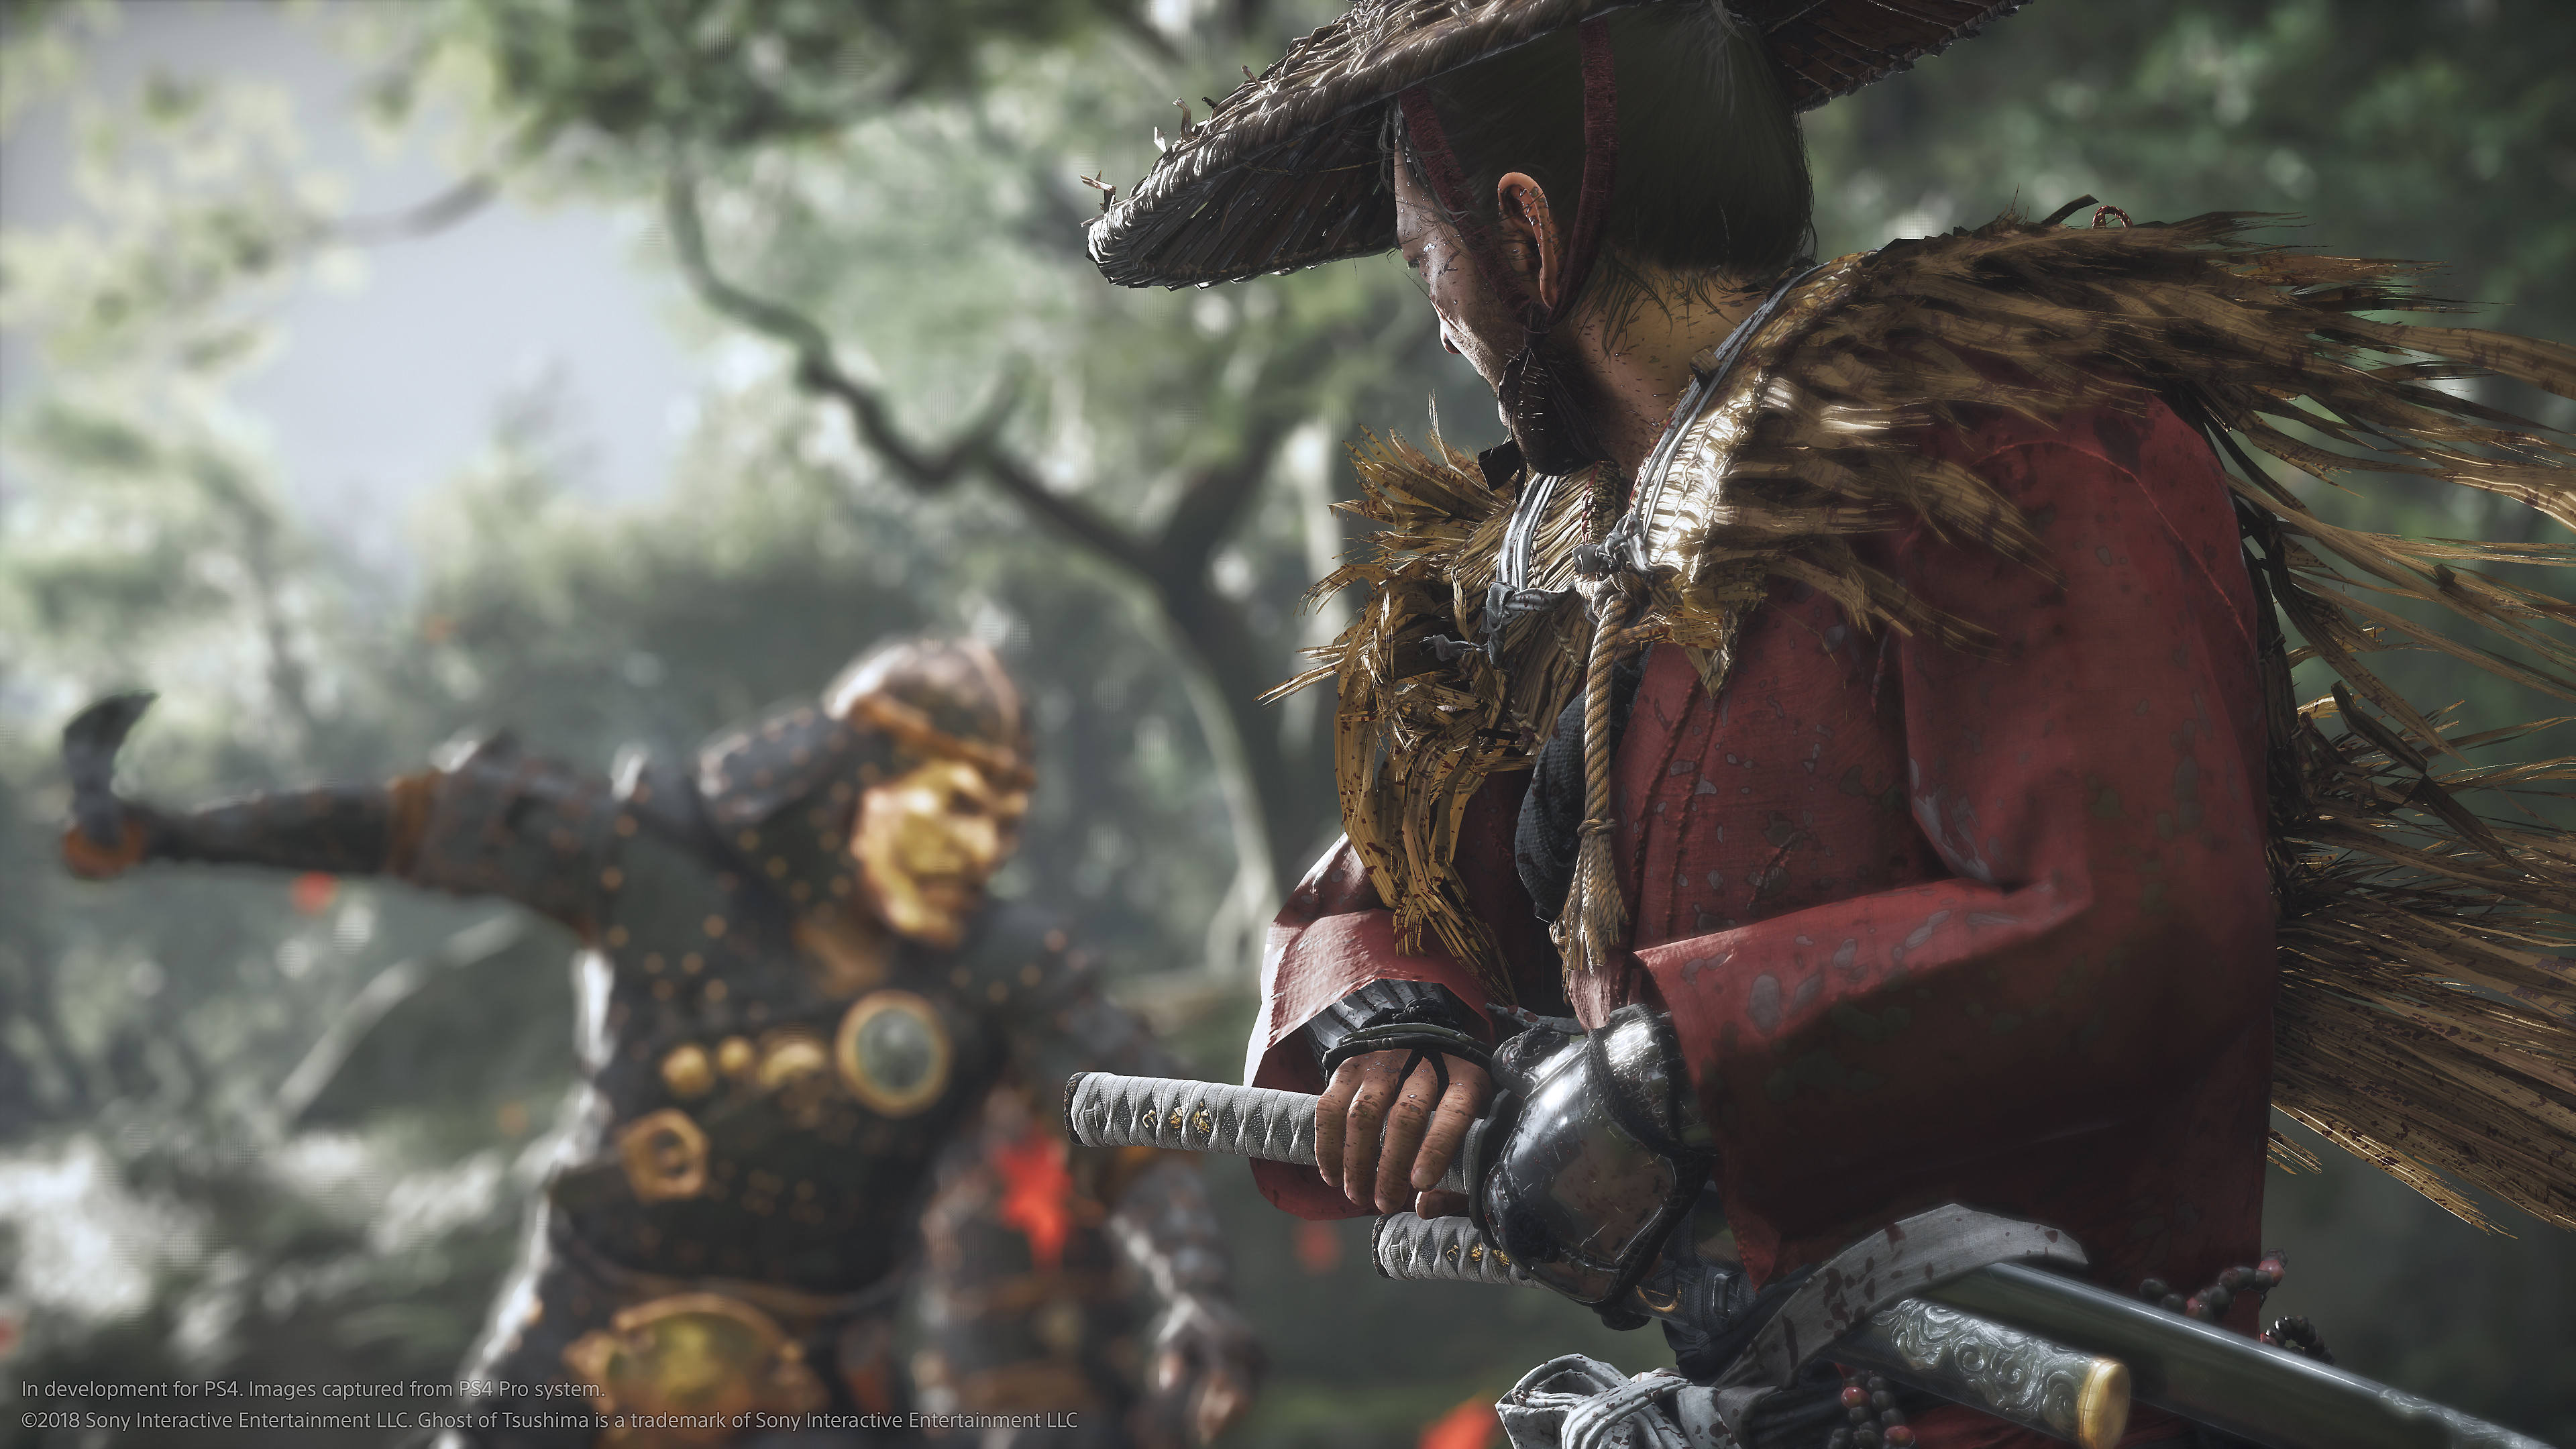 Ghost of Tsushima Screenshot - Jin preparing to wield his katana